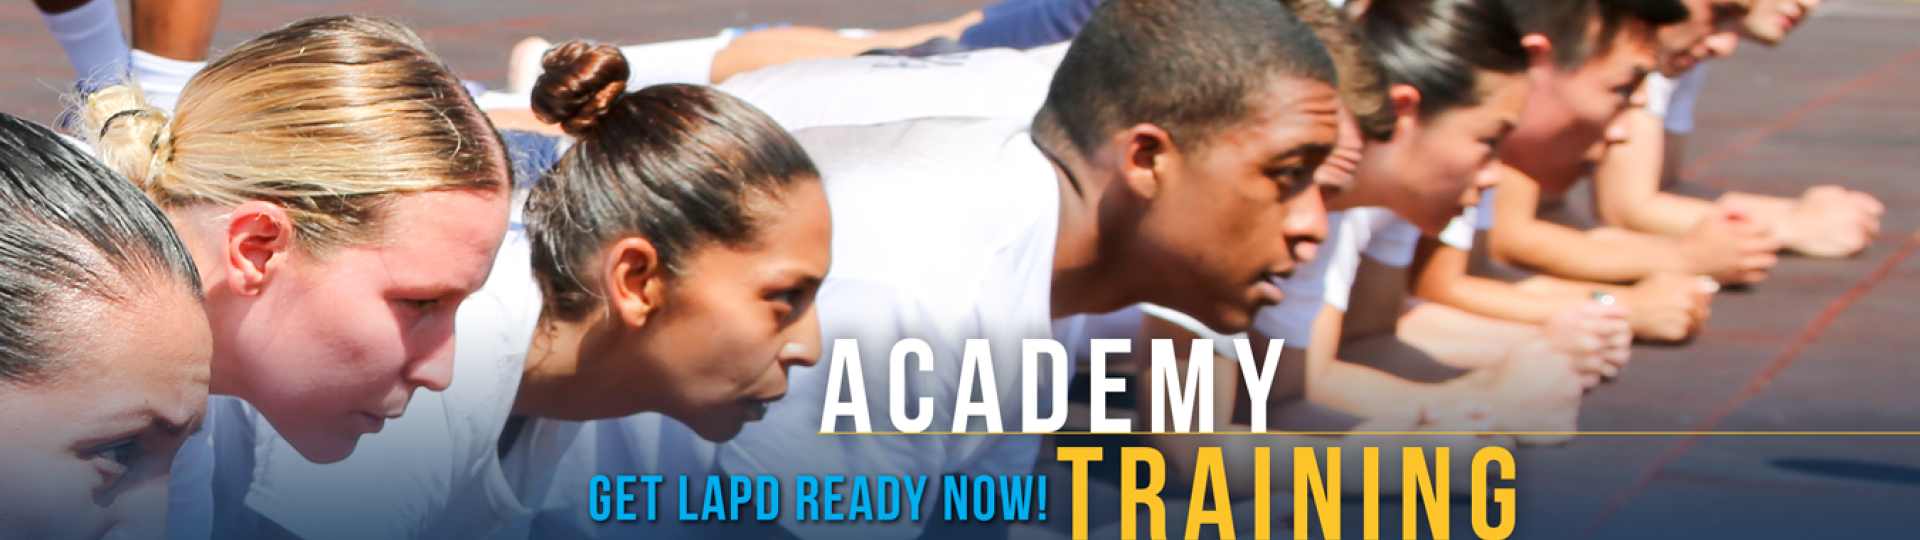 ACADEMY PHYSICAL TRAINING PROGRAM | Join LAPD